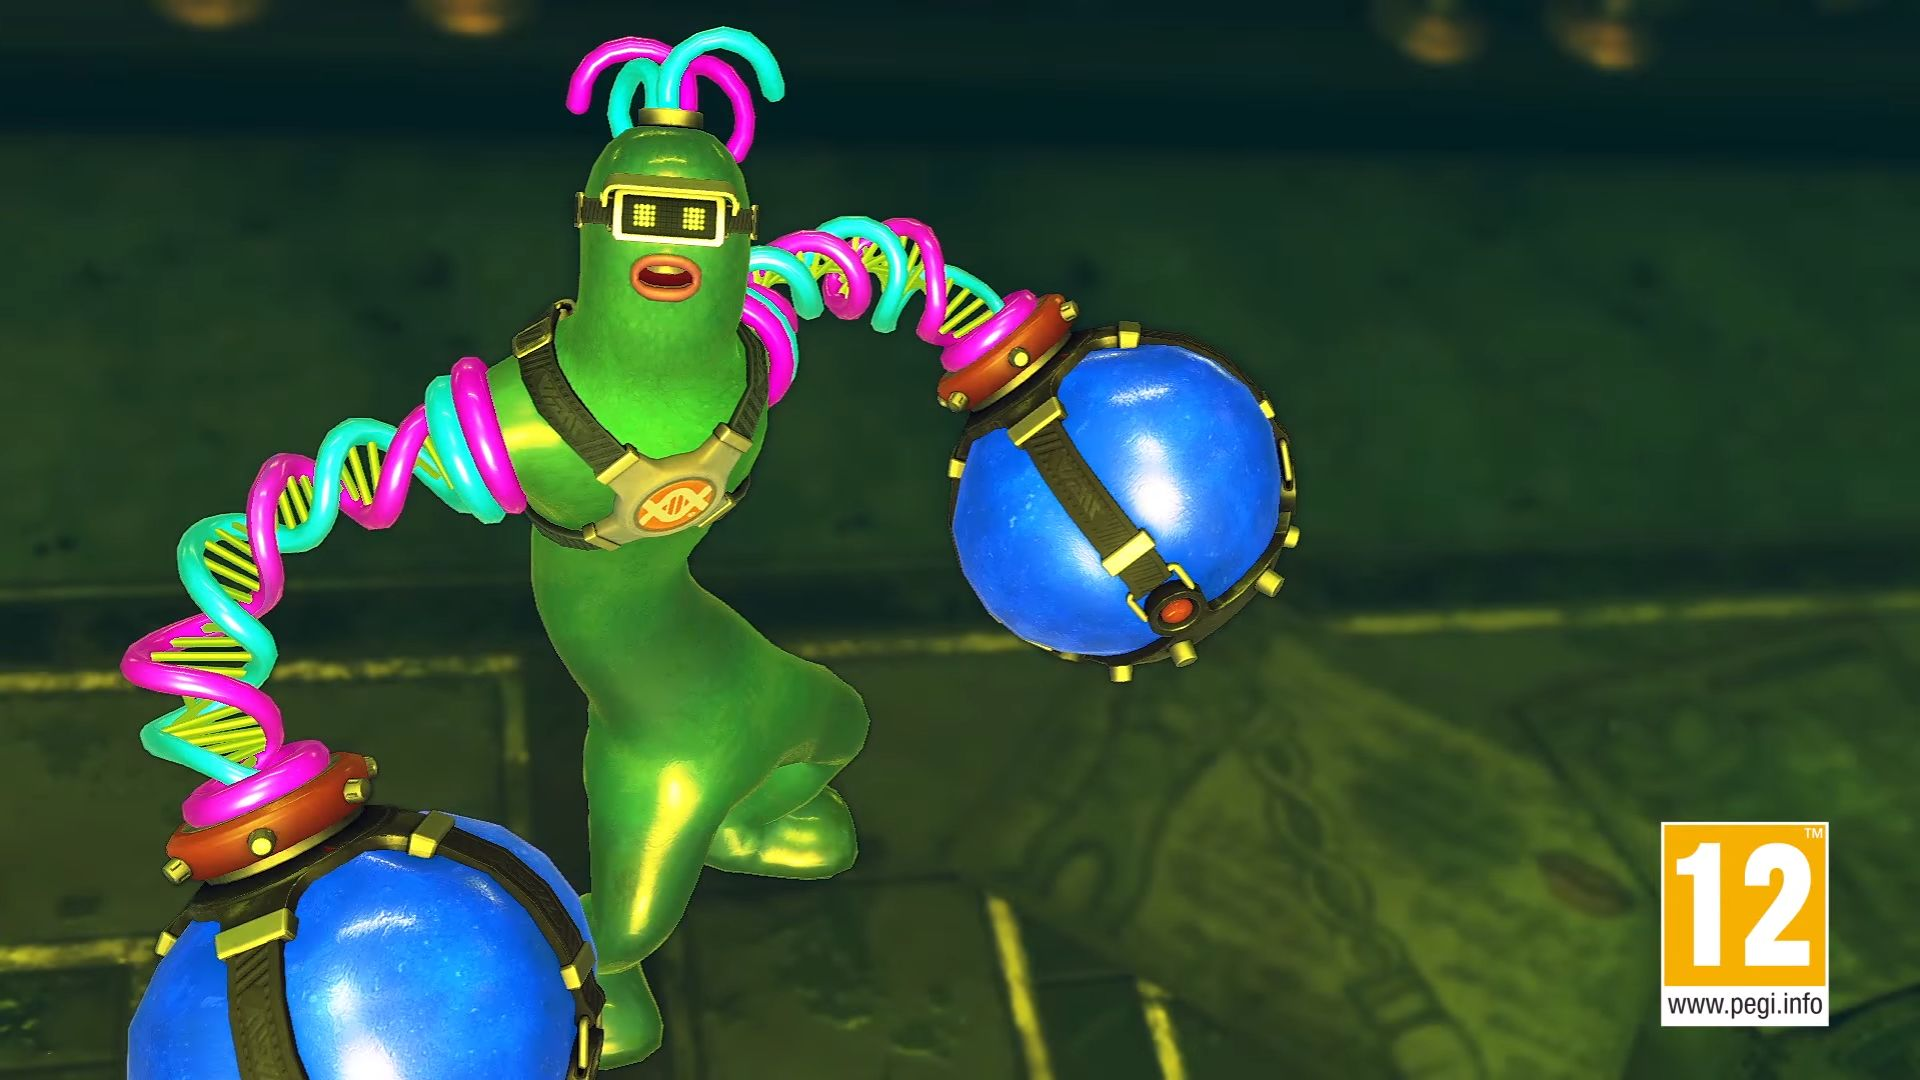 ARMS' New Character Is A Slightly More Anthropomorphic Version Of Flubber